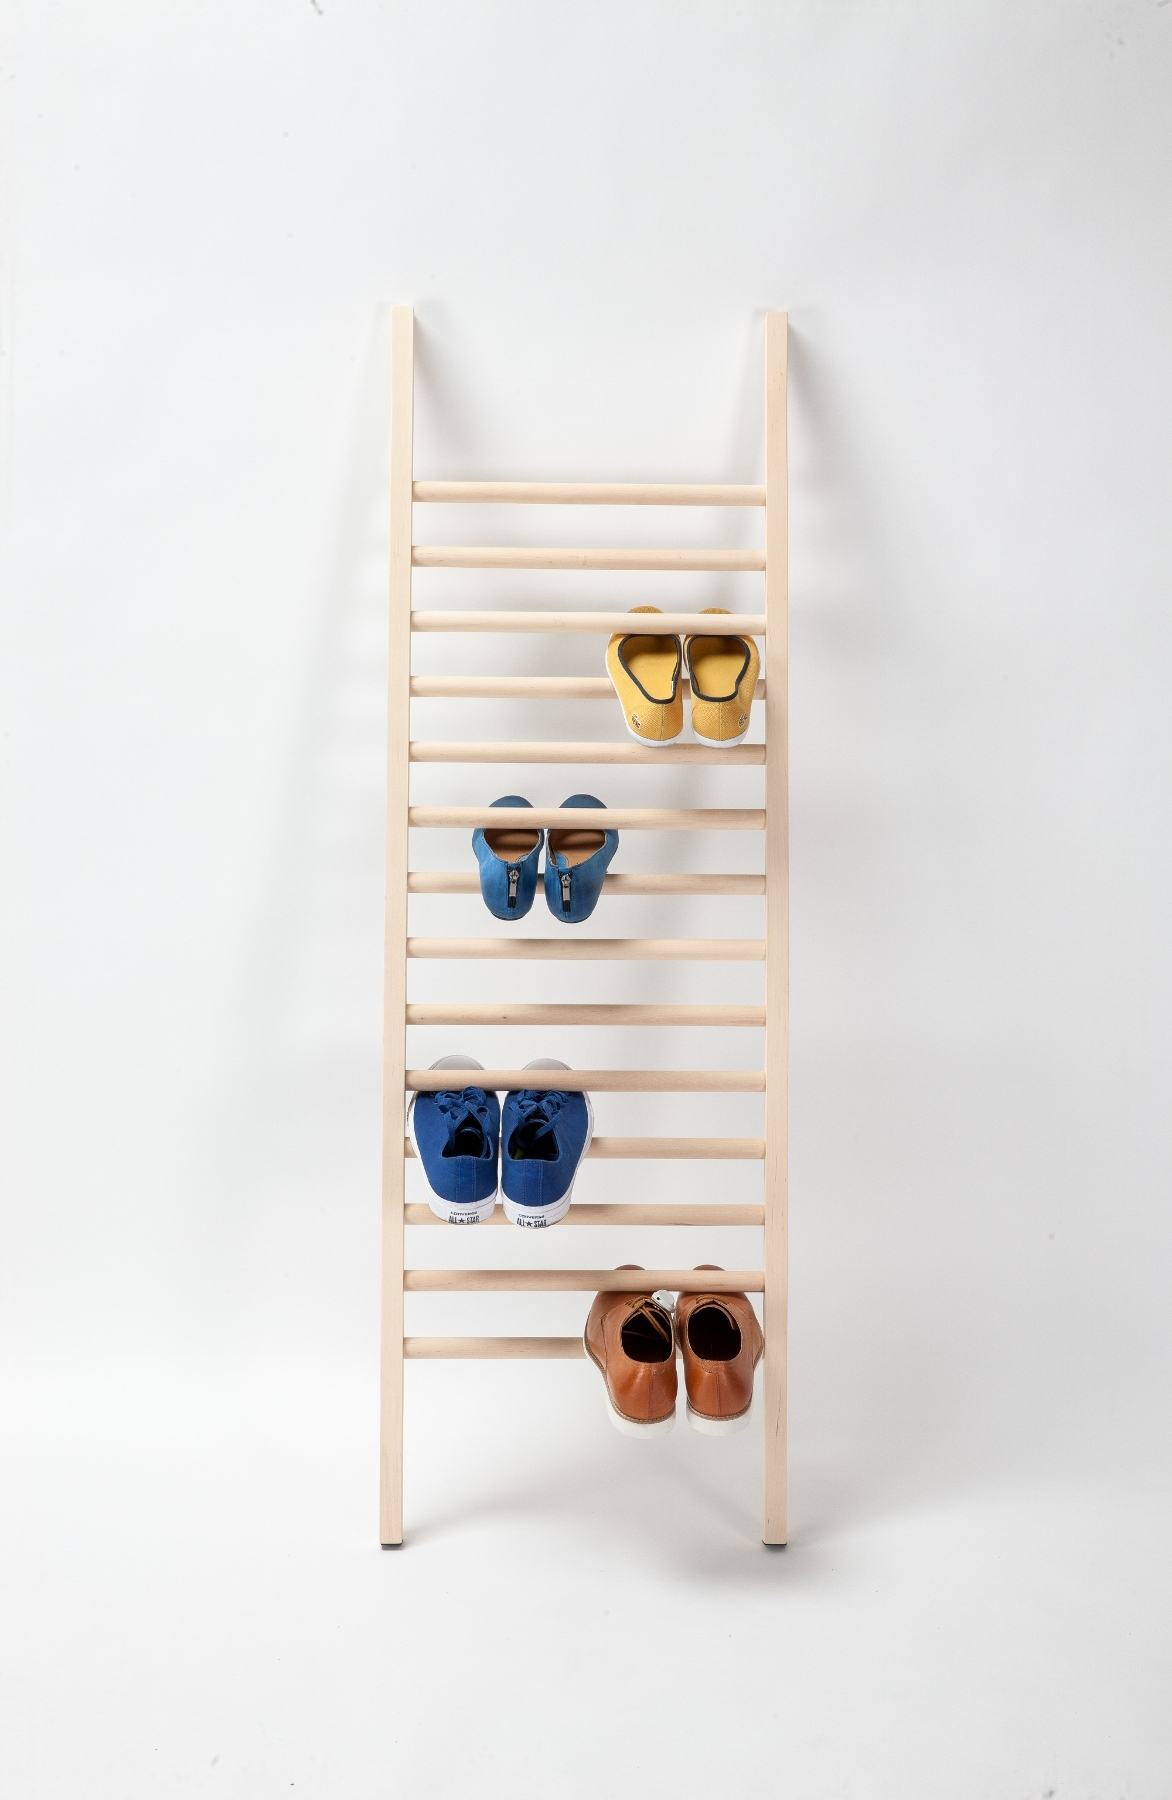 Designer schuhregal step up aus holz emko for Schuhregal design